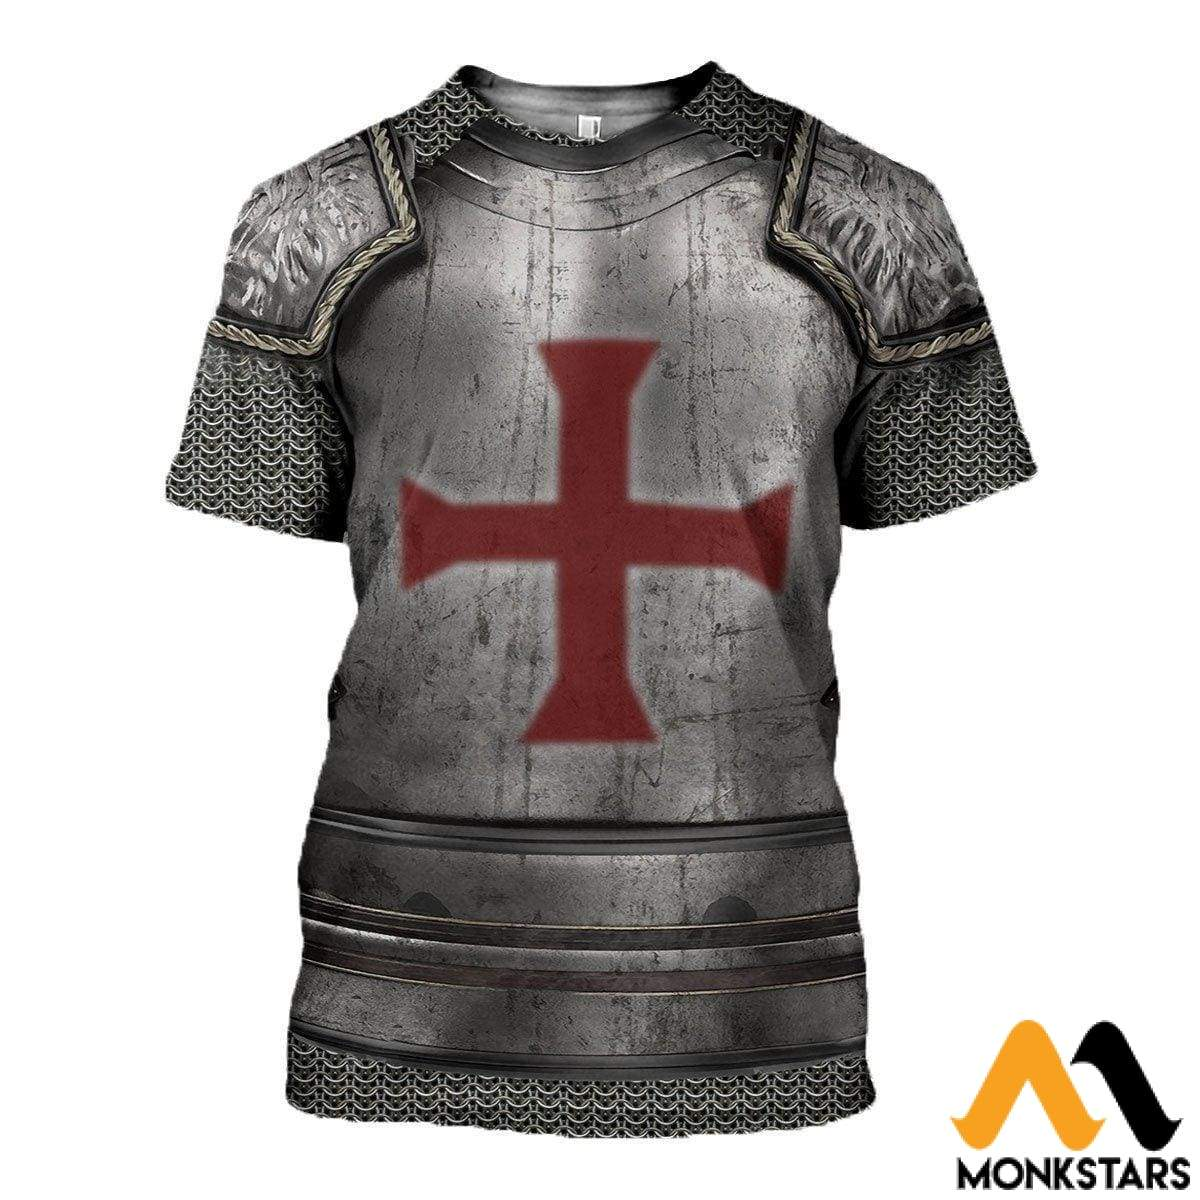 3D All Over Printed Knights Templar Tops T-Shirt / Xs Clothes